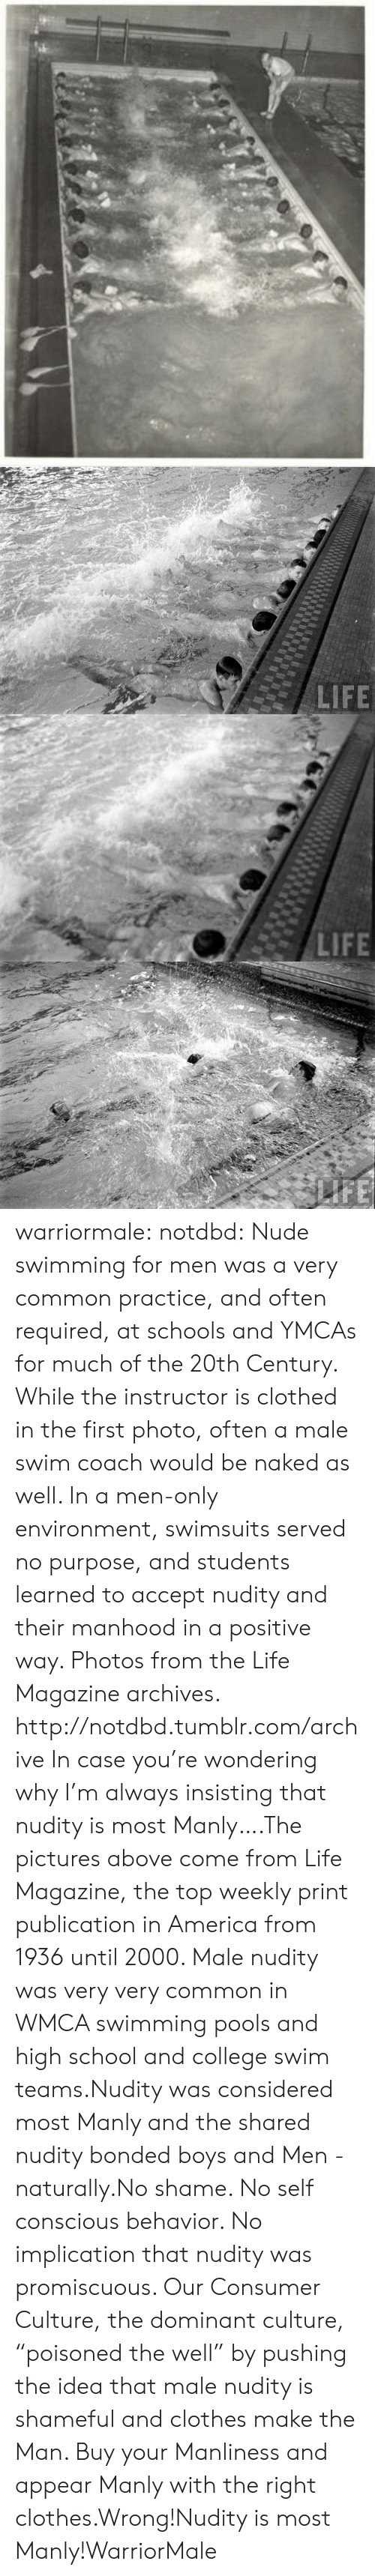 """America, Clothes, and College: warriormale:  notdbd: Nude swimming for men was a very common practice, and often required, at schools and YMCAs for much of the 20th Century. While the instructor is clothed in the first photo, often a male swim coach would be naked as well. In a men-only environment, swimsuits served no purpose, and students learned to accept nudity and their manhood in a positive way. Photos from the Life Magazine archives.   http://notdbd.tumblr.com/archive  In case you're wondering why I'm always insisting that nudity is most Manly….The pictures above come from Life Magazine, the top weekly print publication in America from 1936 until 2000. Male nudity was very very common in WMCA swimming pools and high school and college swim teams.Nudity was considered most Manly and the shared nudity bonded boys and Men - naturally.No shame. No self conscious behavior. No implication that nudity was promiscuous. Our Consumer Culture, the dominant culture, """"poisoned the well"""" by pushing the idea that male nudity is shameful and clothes make the Man. Buy your Manliness and appear Manly with the right clothes.Wrong!Nudity is most Manly!WarriorMale"""